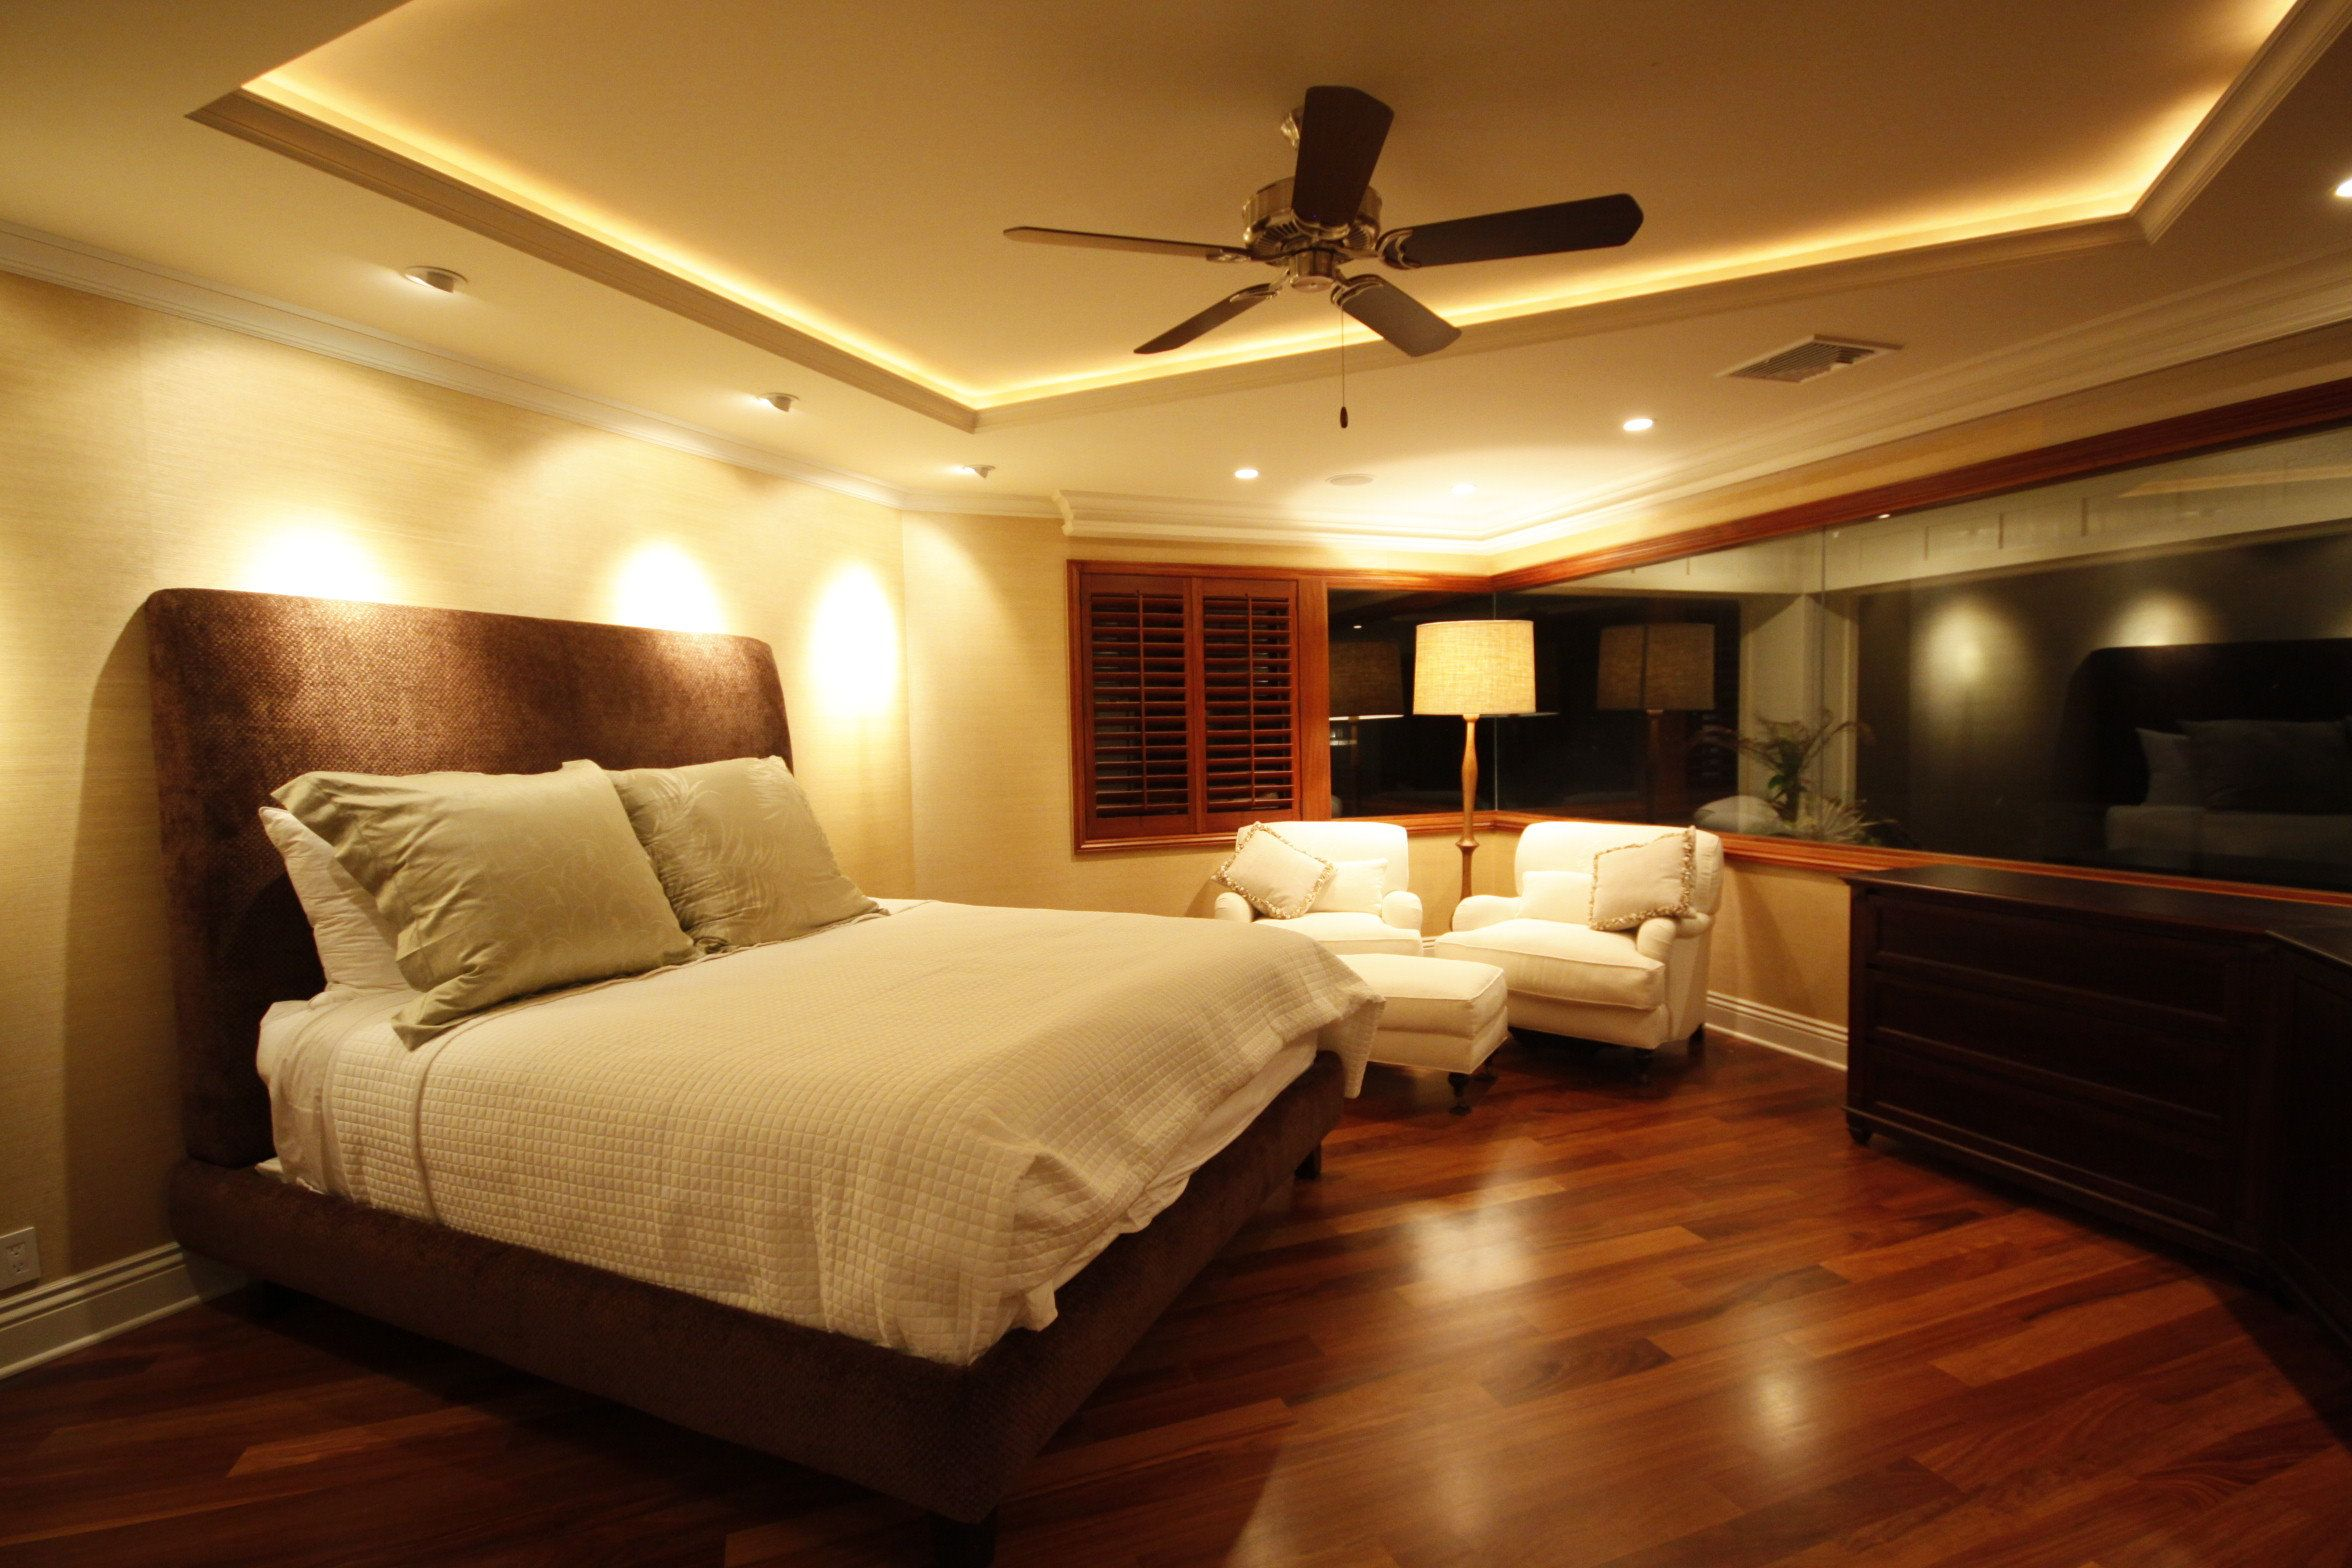 Appealing master bedroom modern decor with wooden floors - Big master bedroom design ...